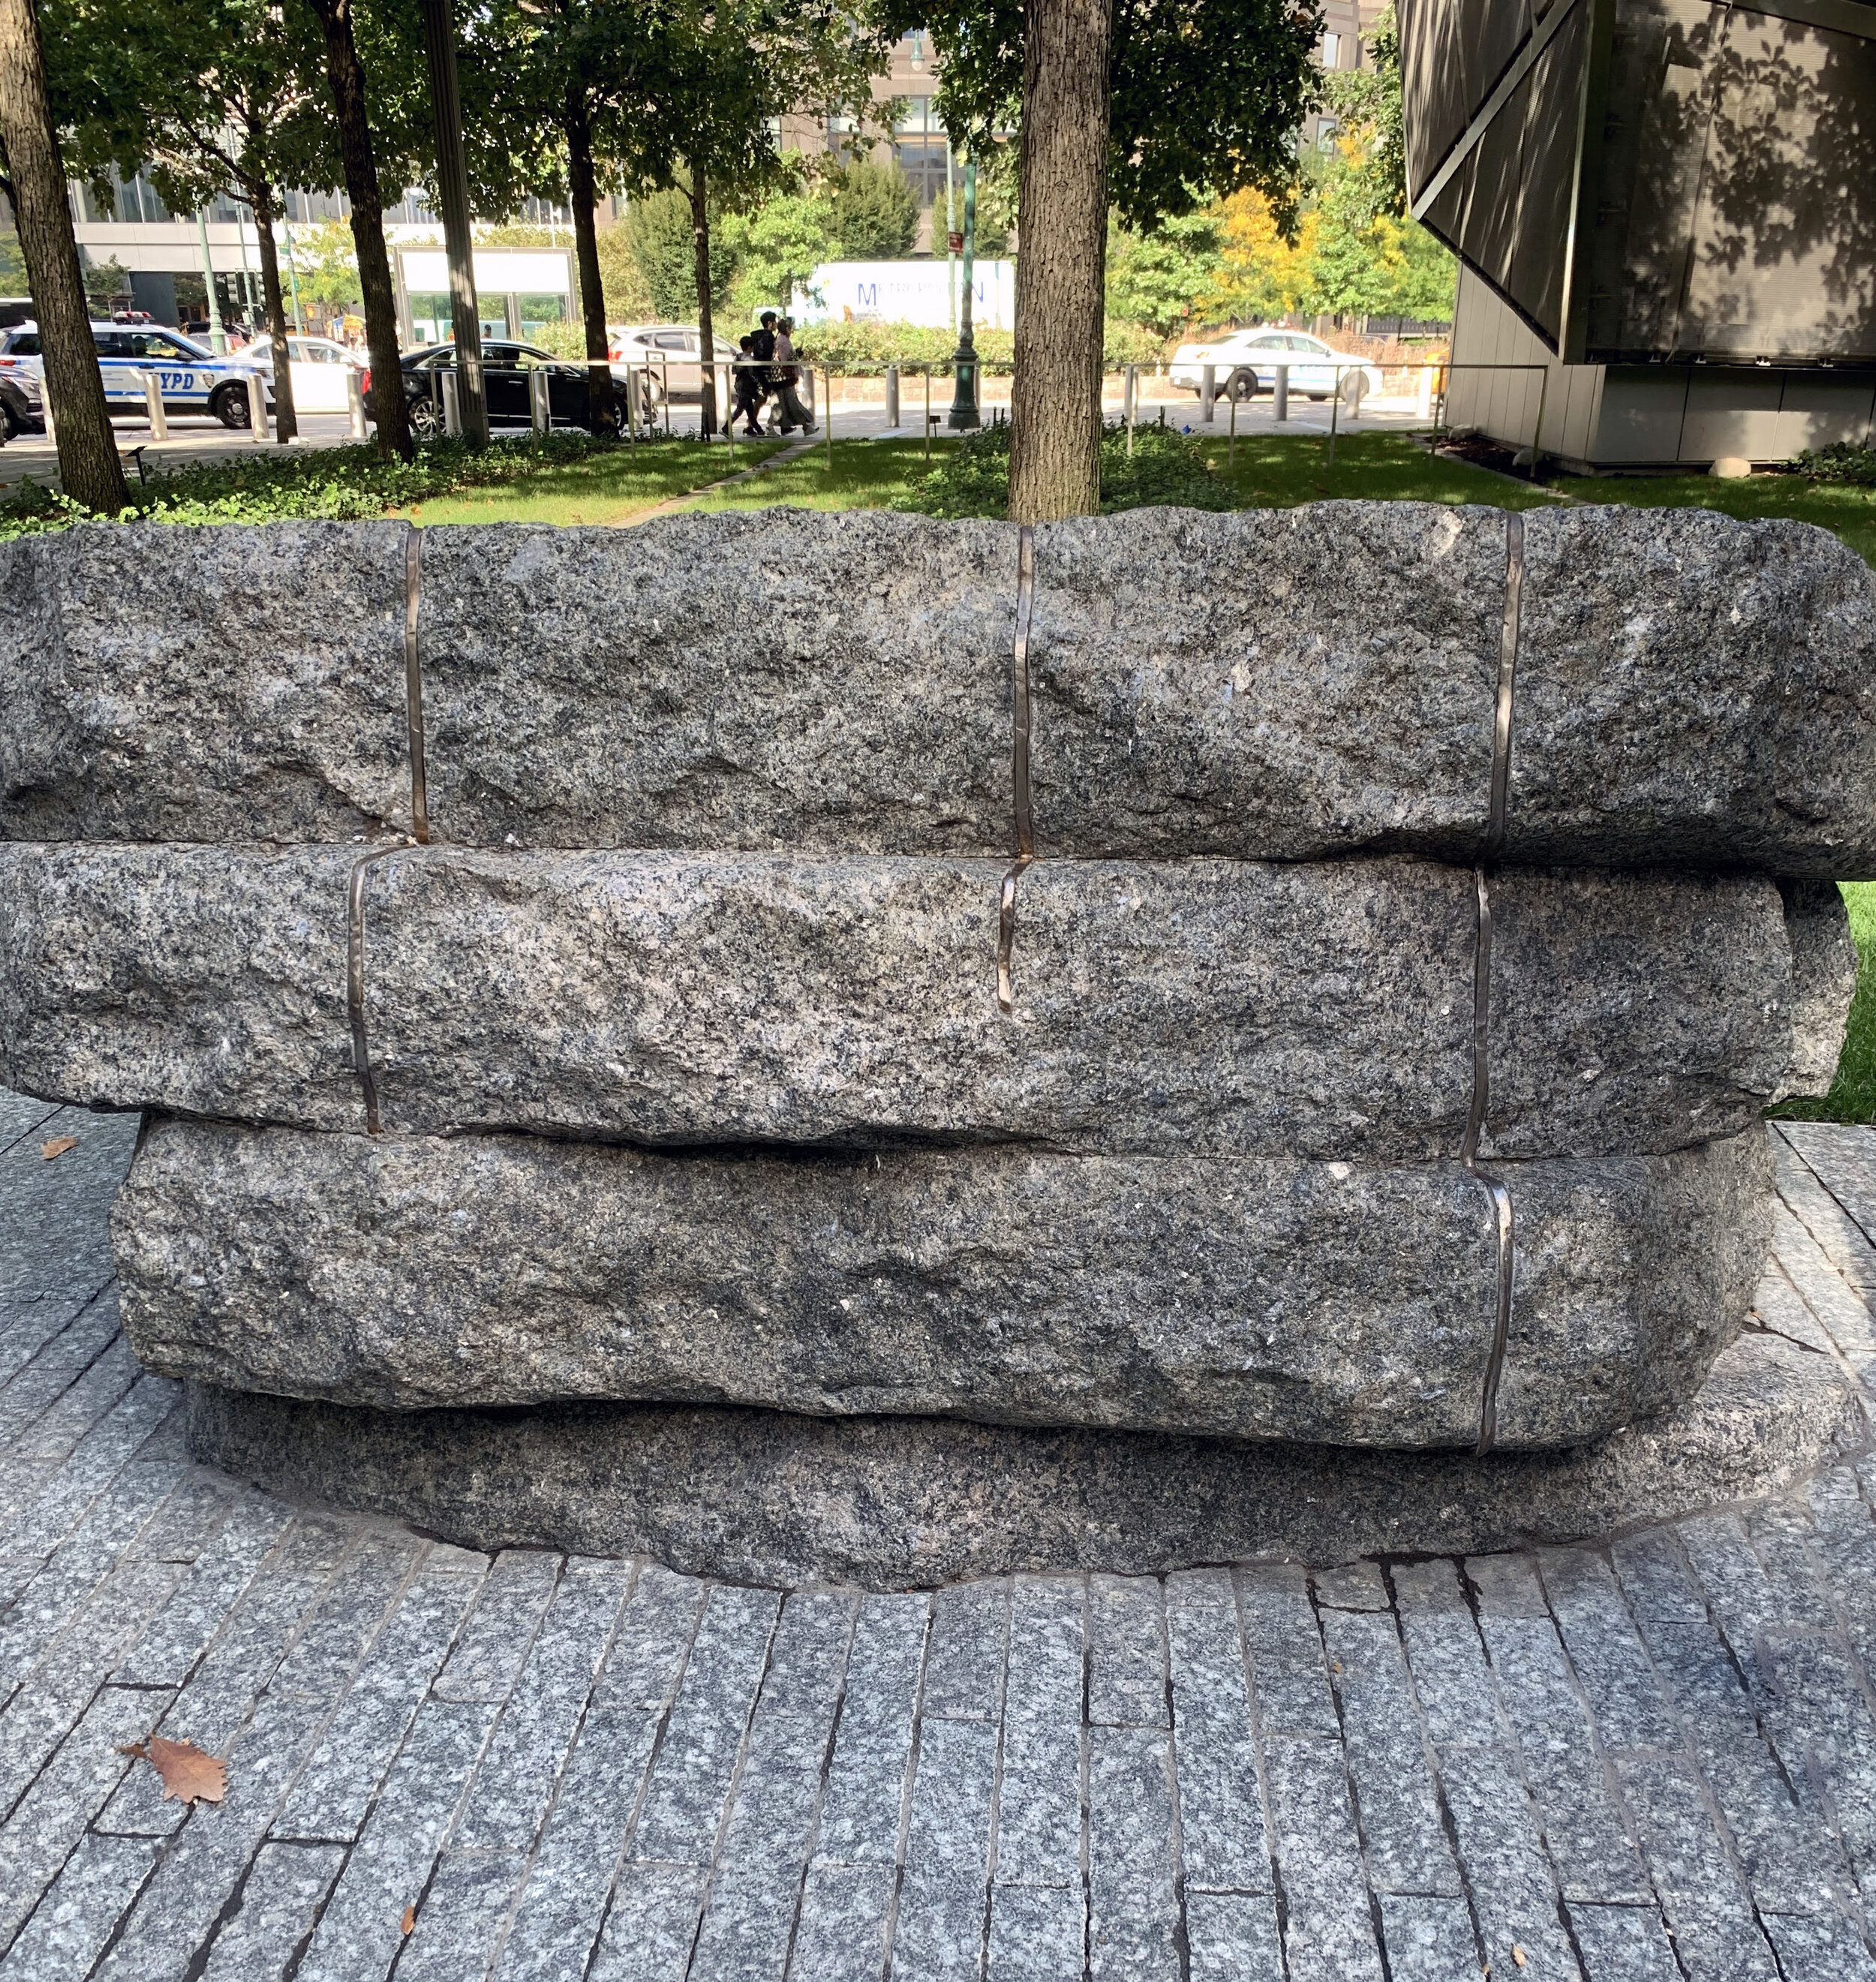 Opened in May 2019, the Memorial Glade that honors first responders who later got sick or died after inhaling toxins at the World Trade Center site. Six large battered stones appear to jut up and out of the plaza as if violently displaced, and convey strength and resistance.